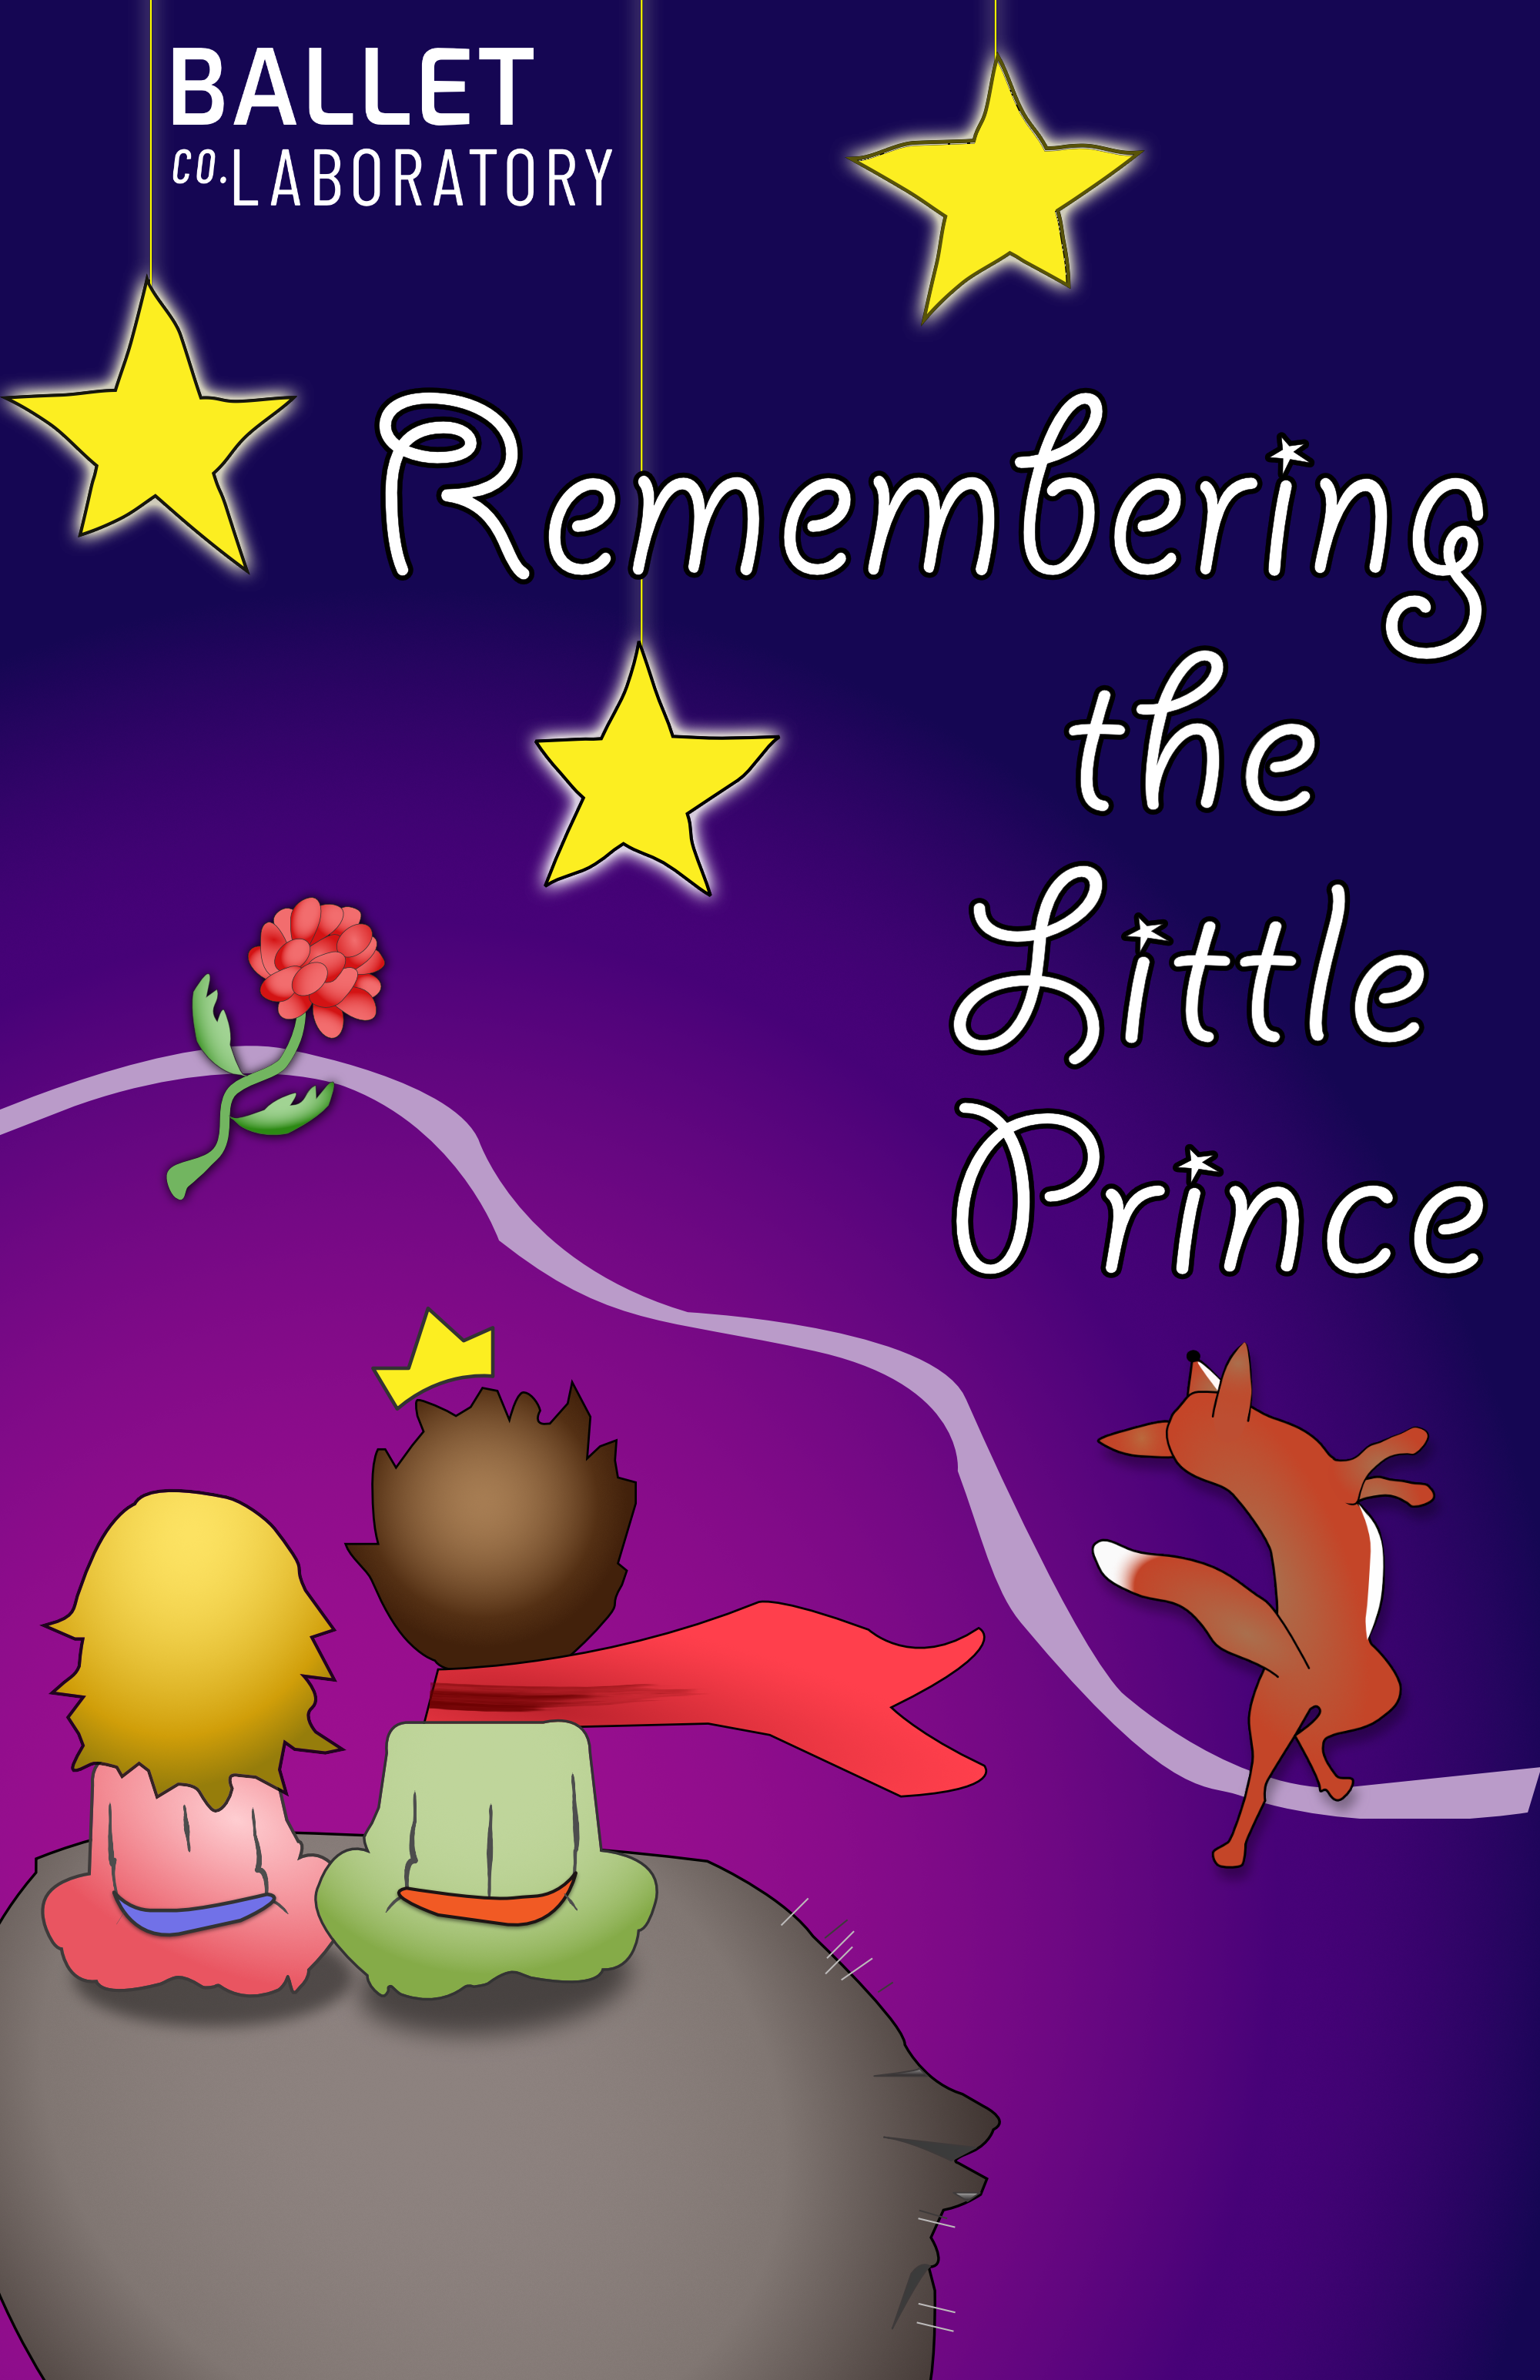 Little Prince Poster Artwork 0410_1.png